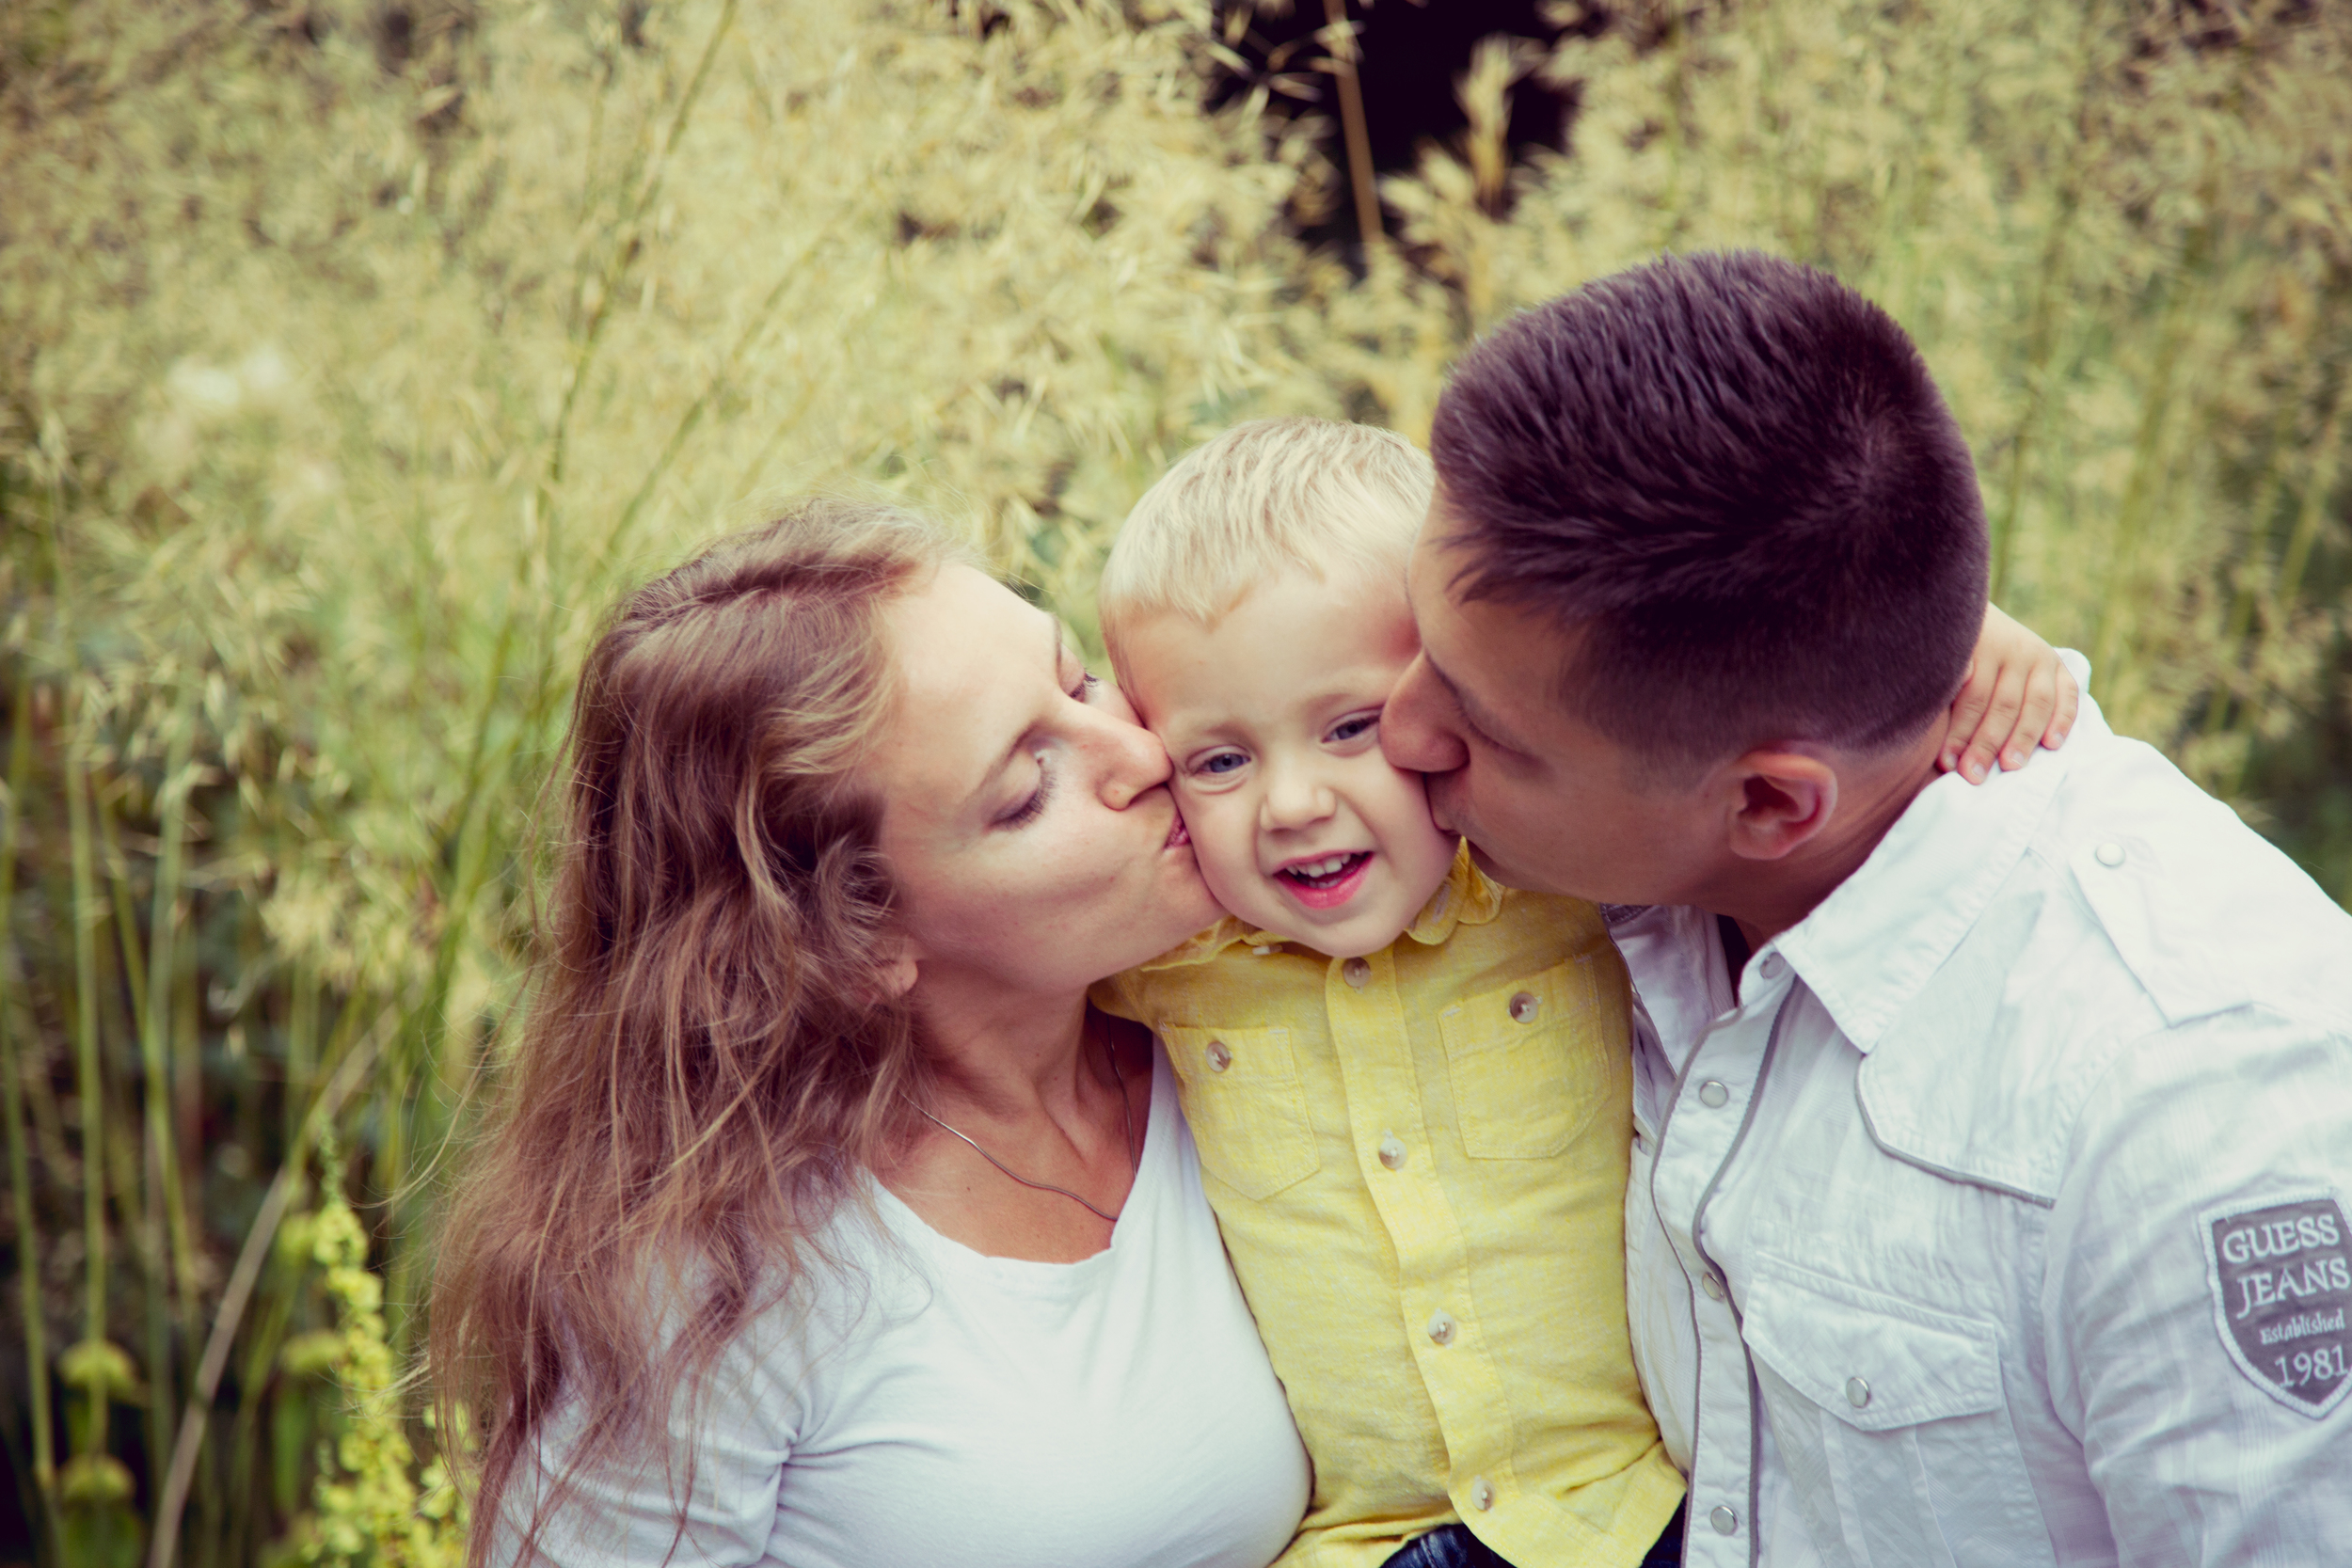 Bellevue Botanical Garden Family Session 4